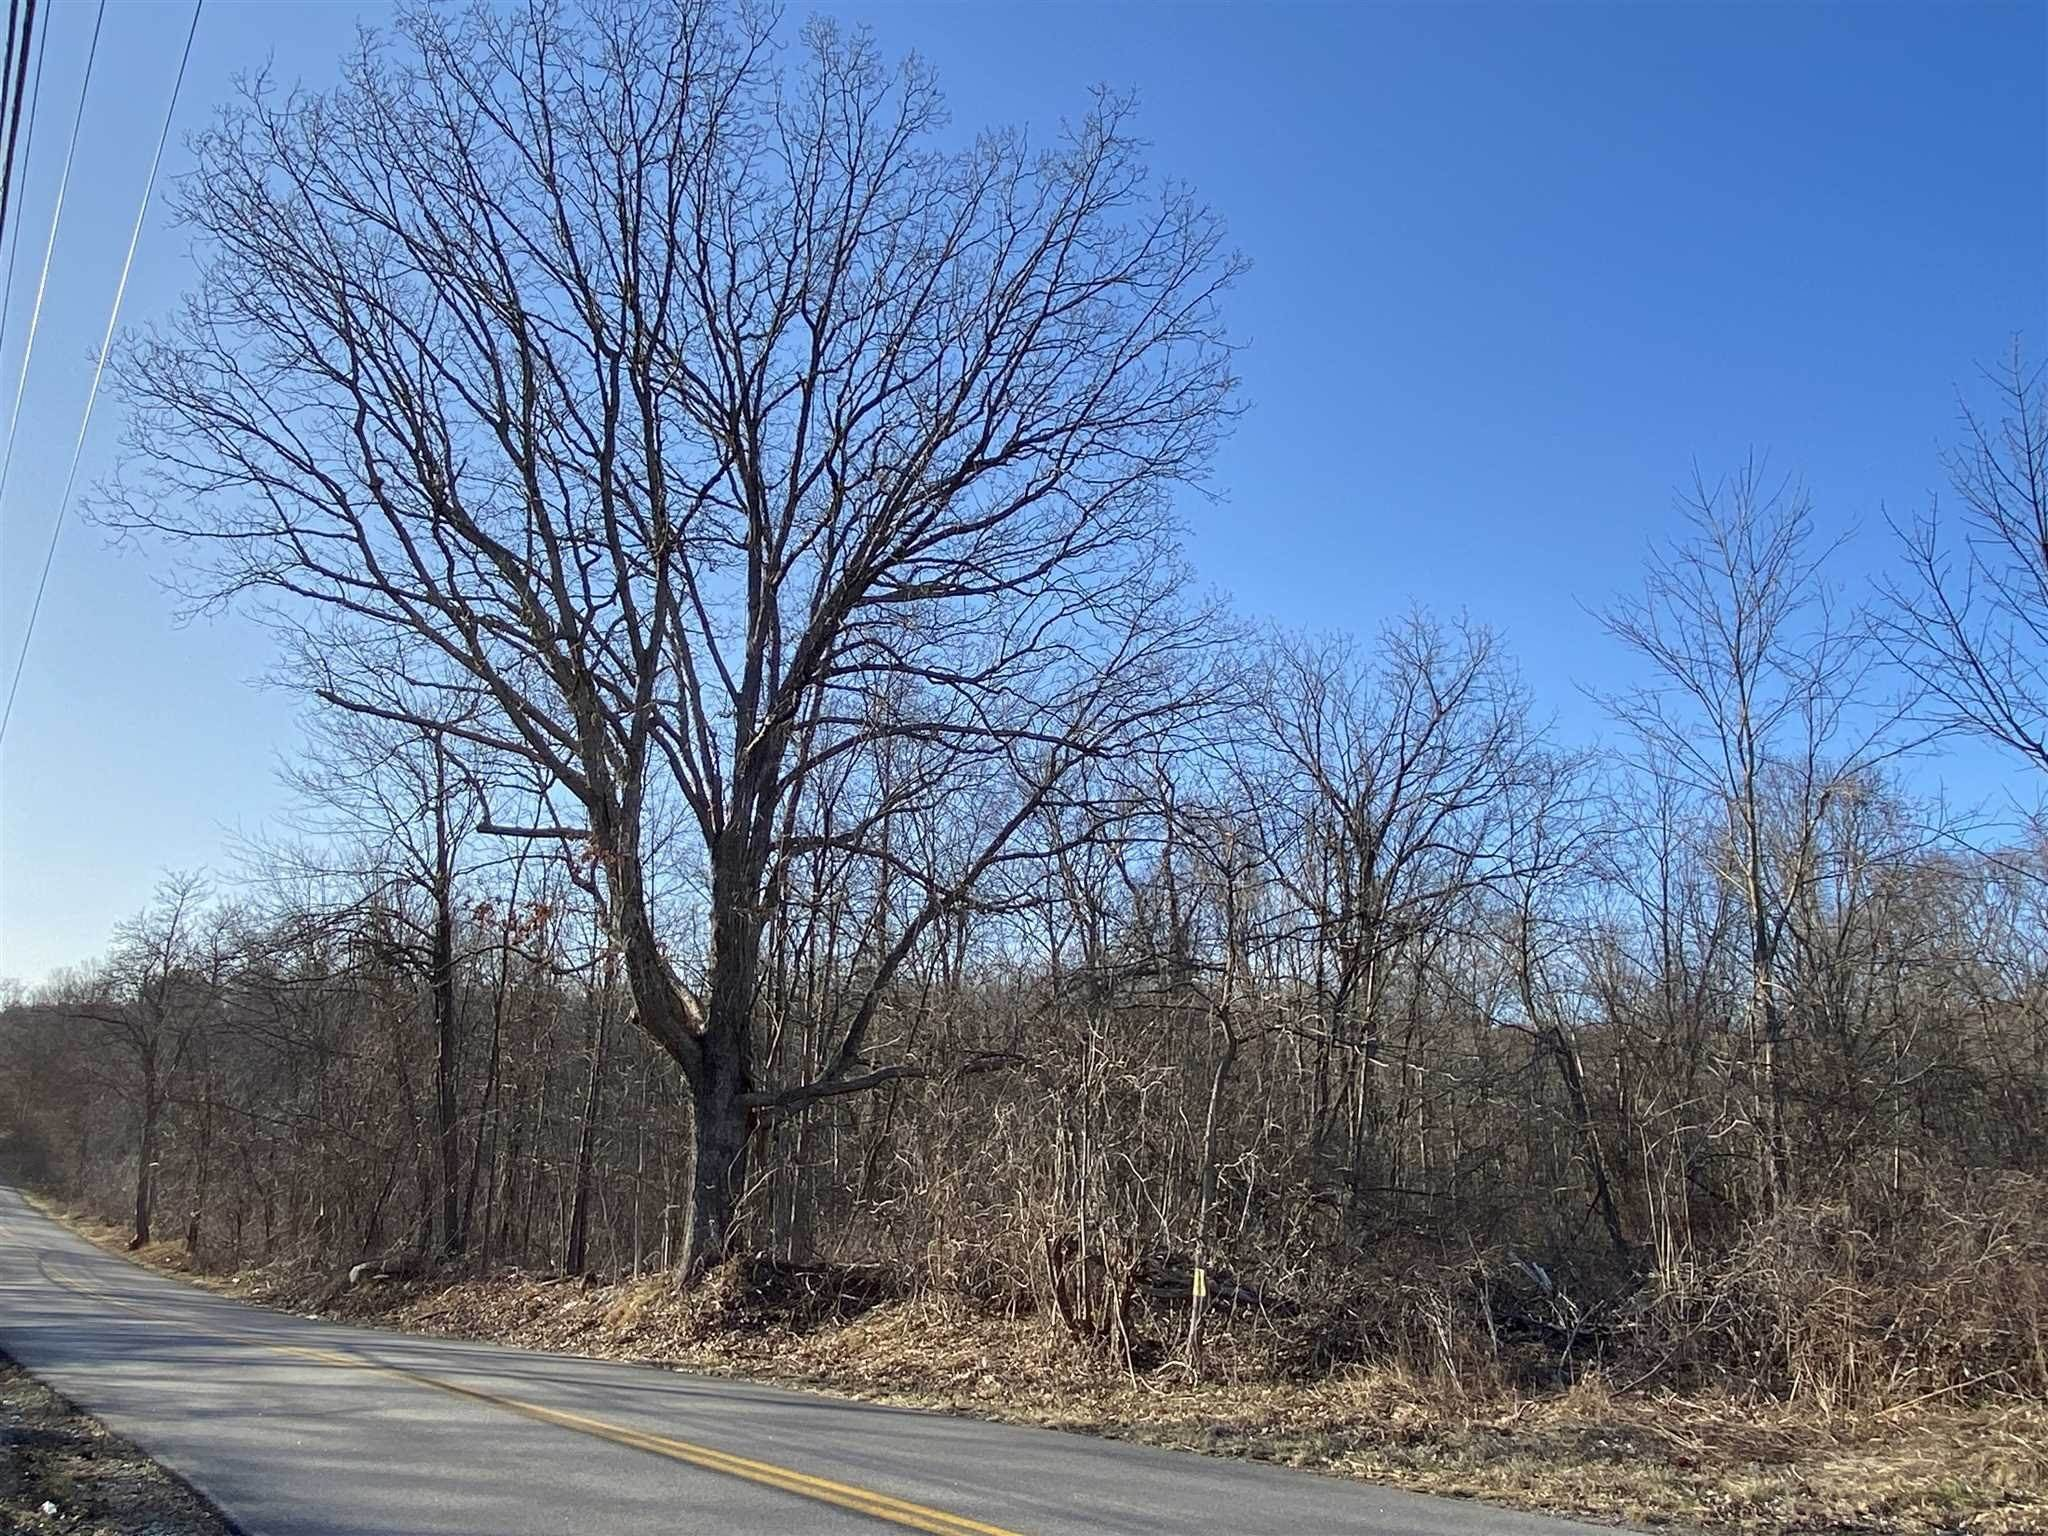 Land for Sale at 360 BULLET HOLE ROAD Carmel, New York 10541 United States